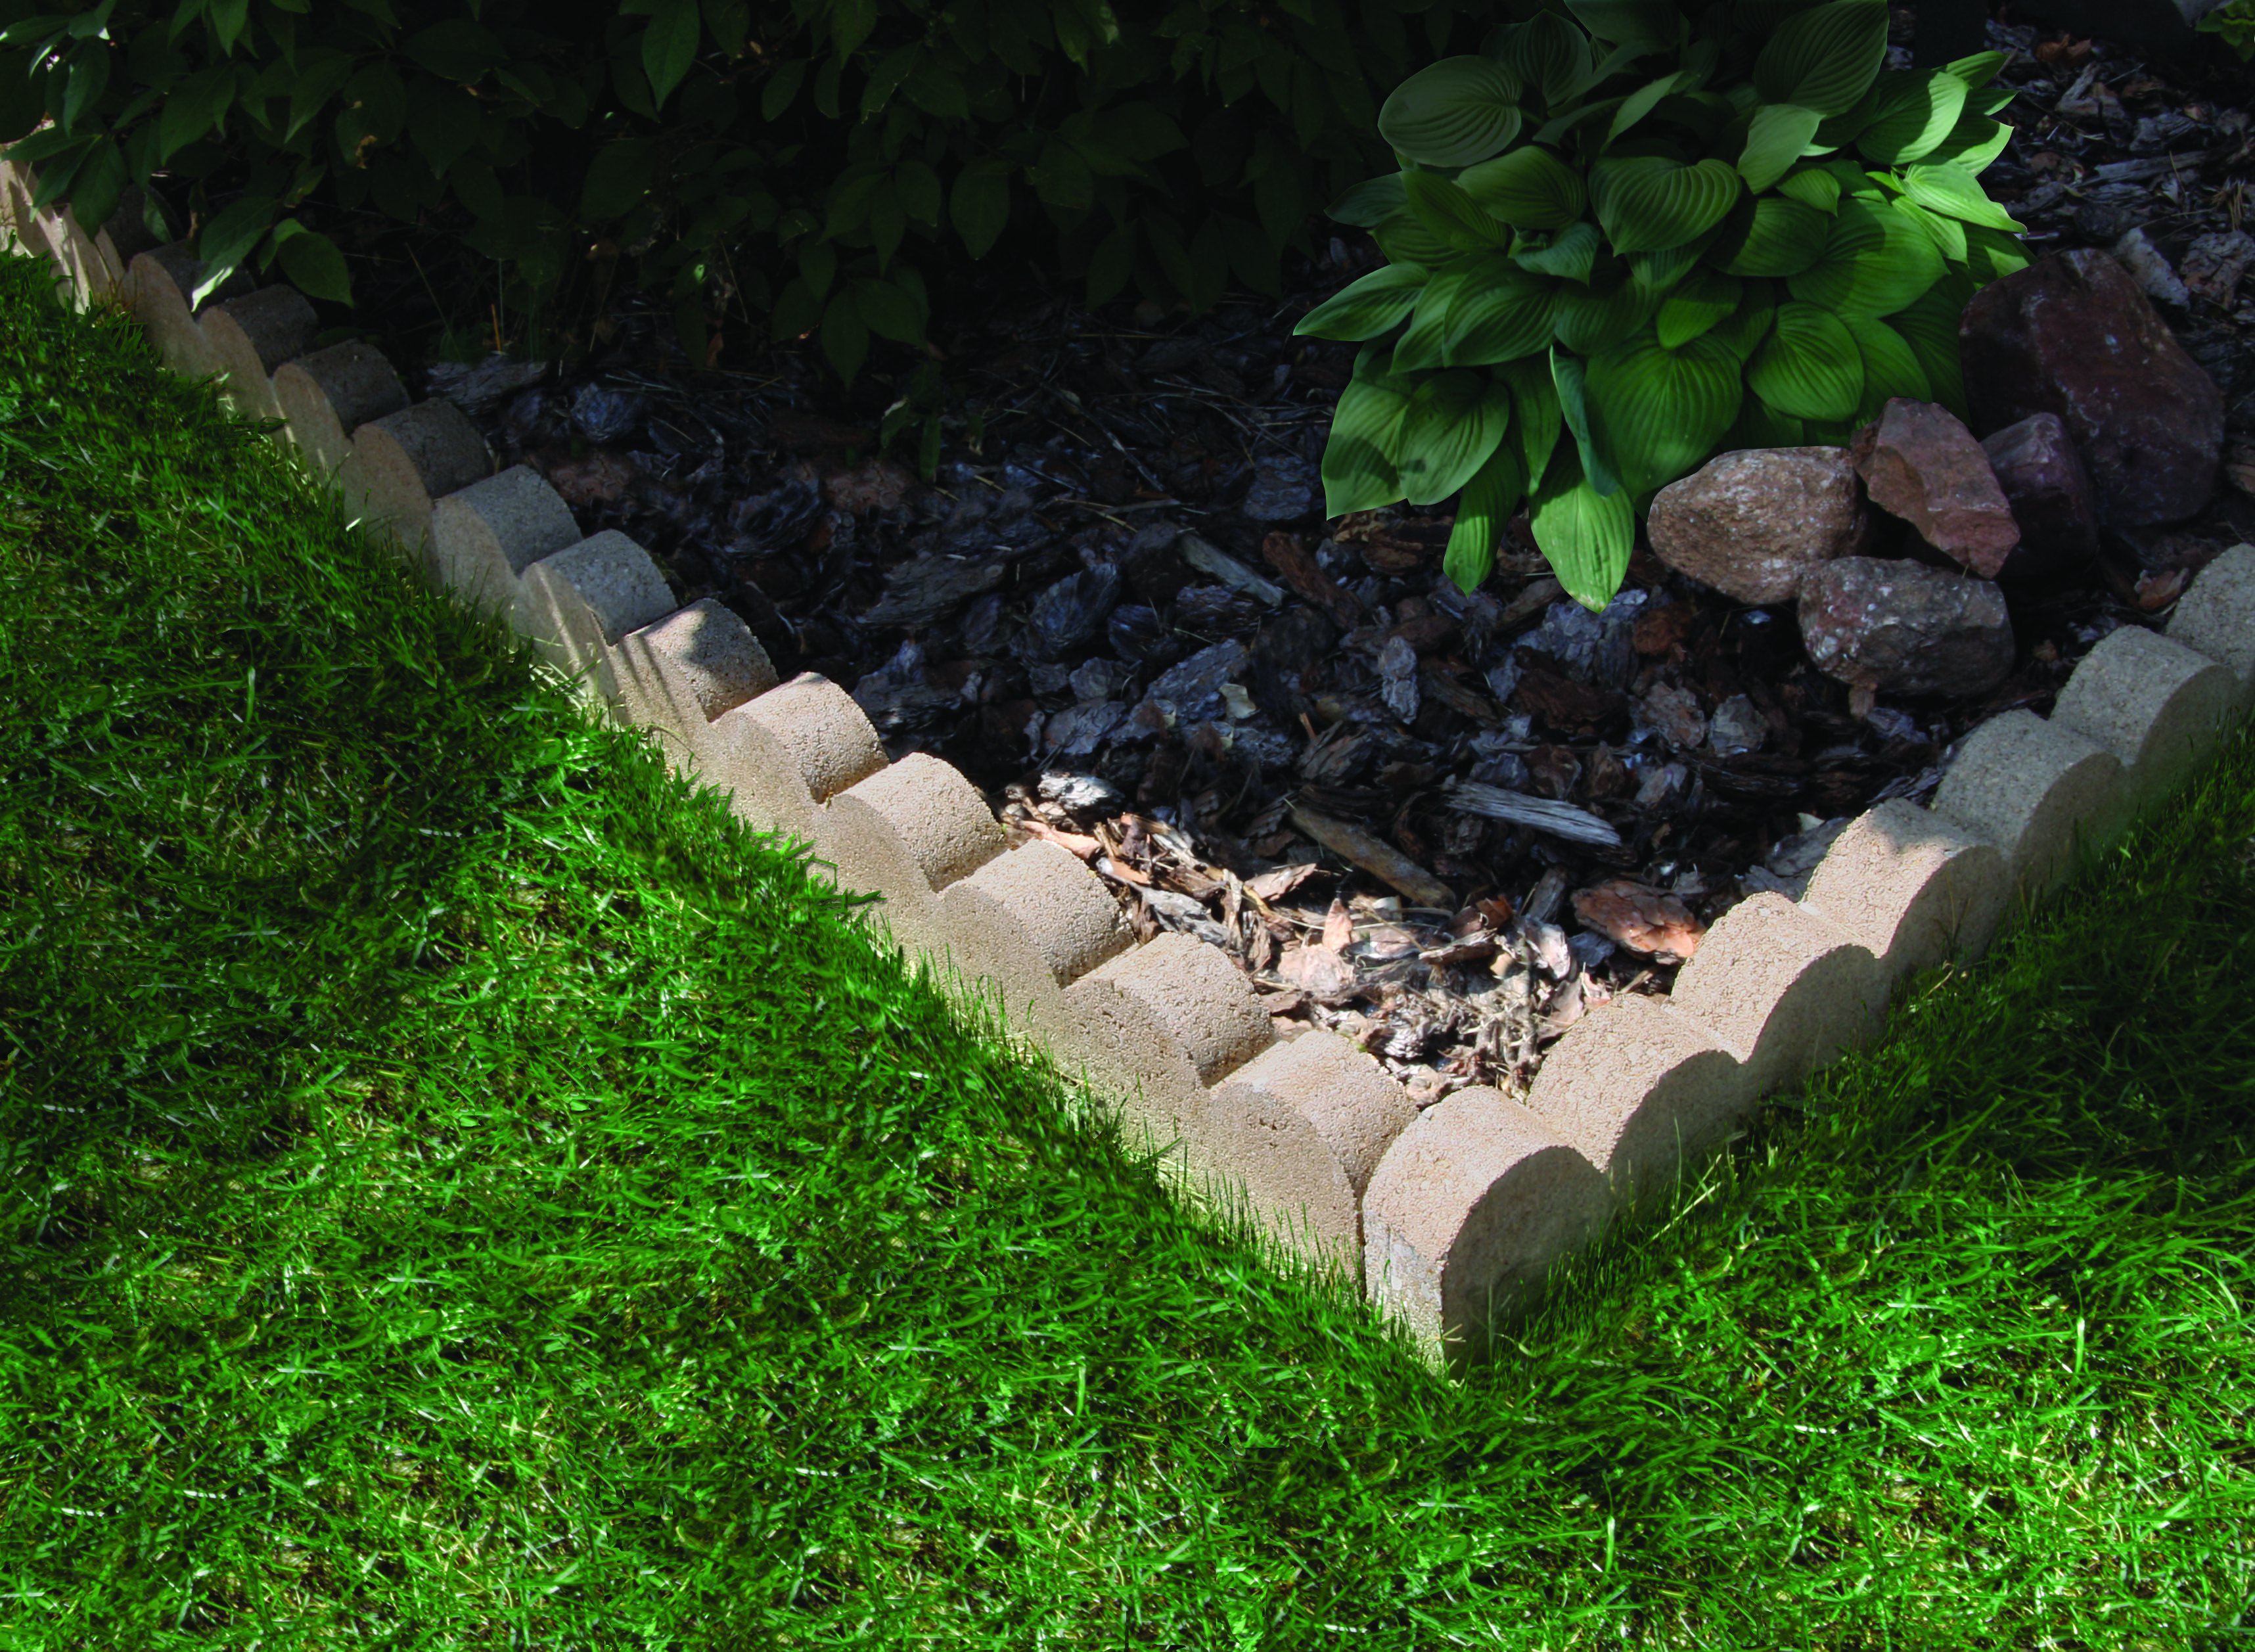 Scallops Add A Bit More Fun And Character To Your Project The Design Draws Attention Making The Eye Take Notice Of The C Designs To Draw Garden Outdoor Decor